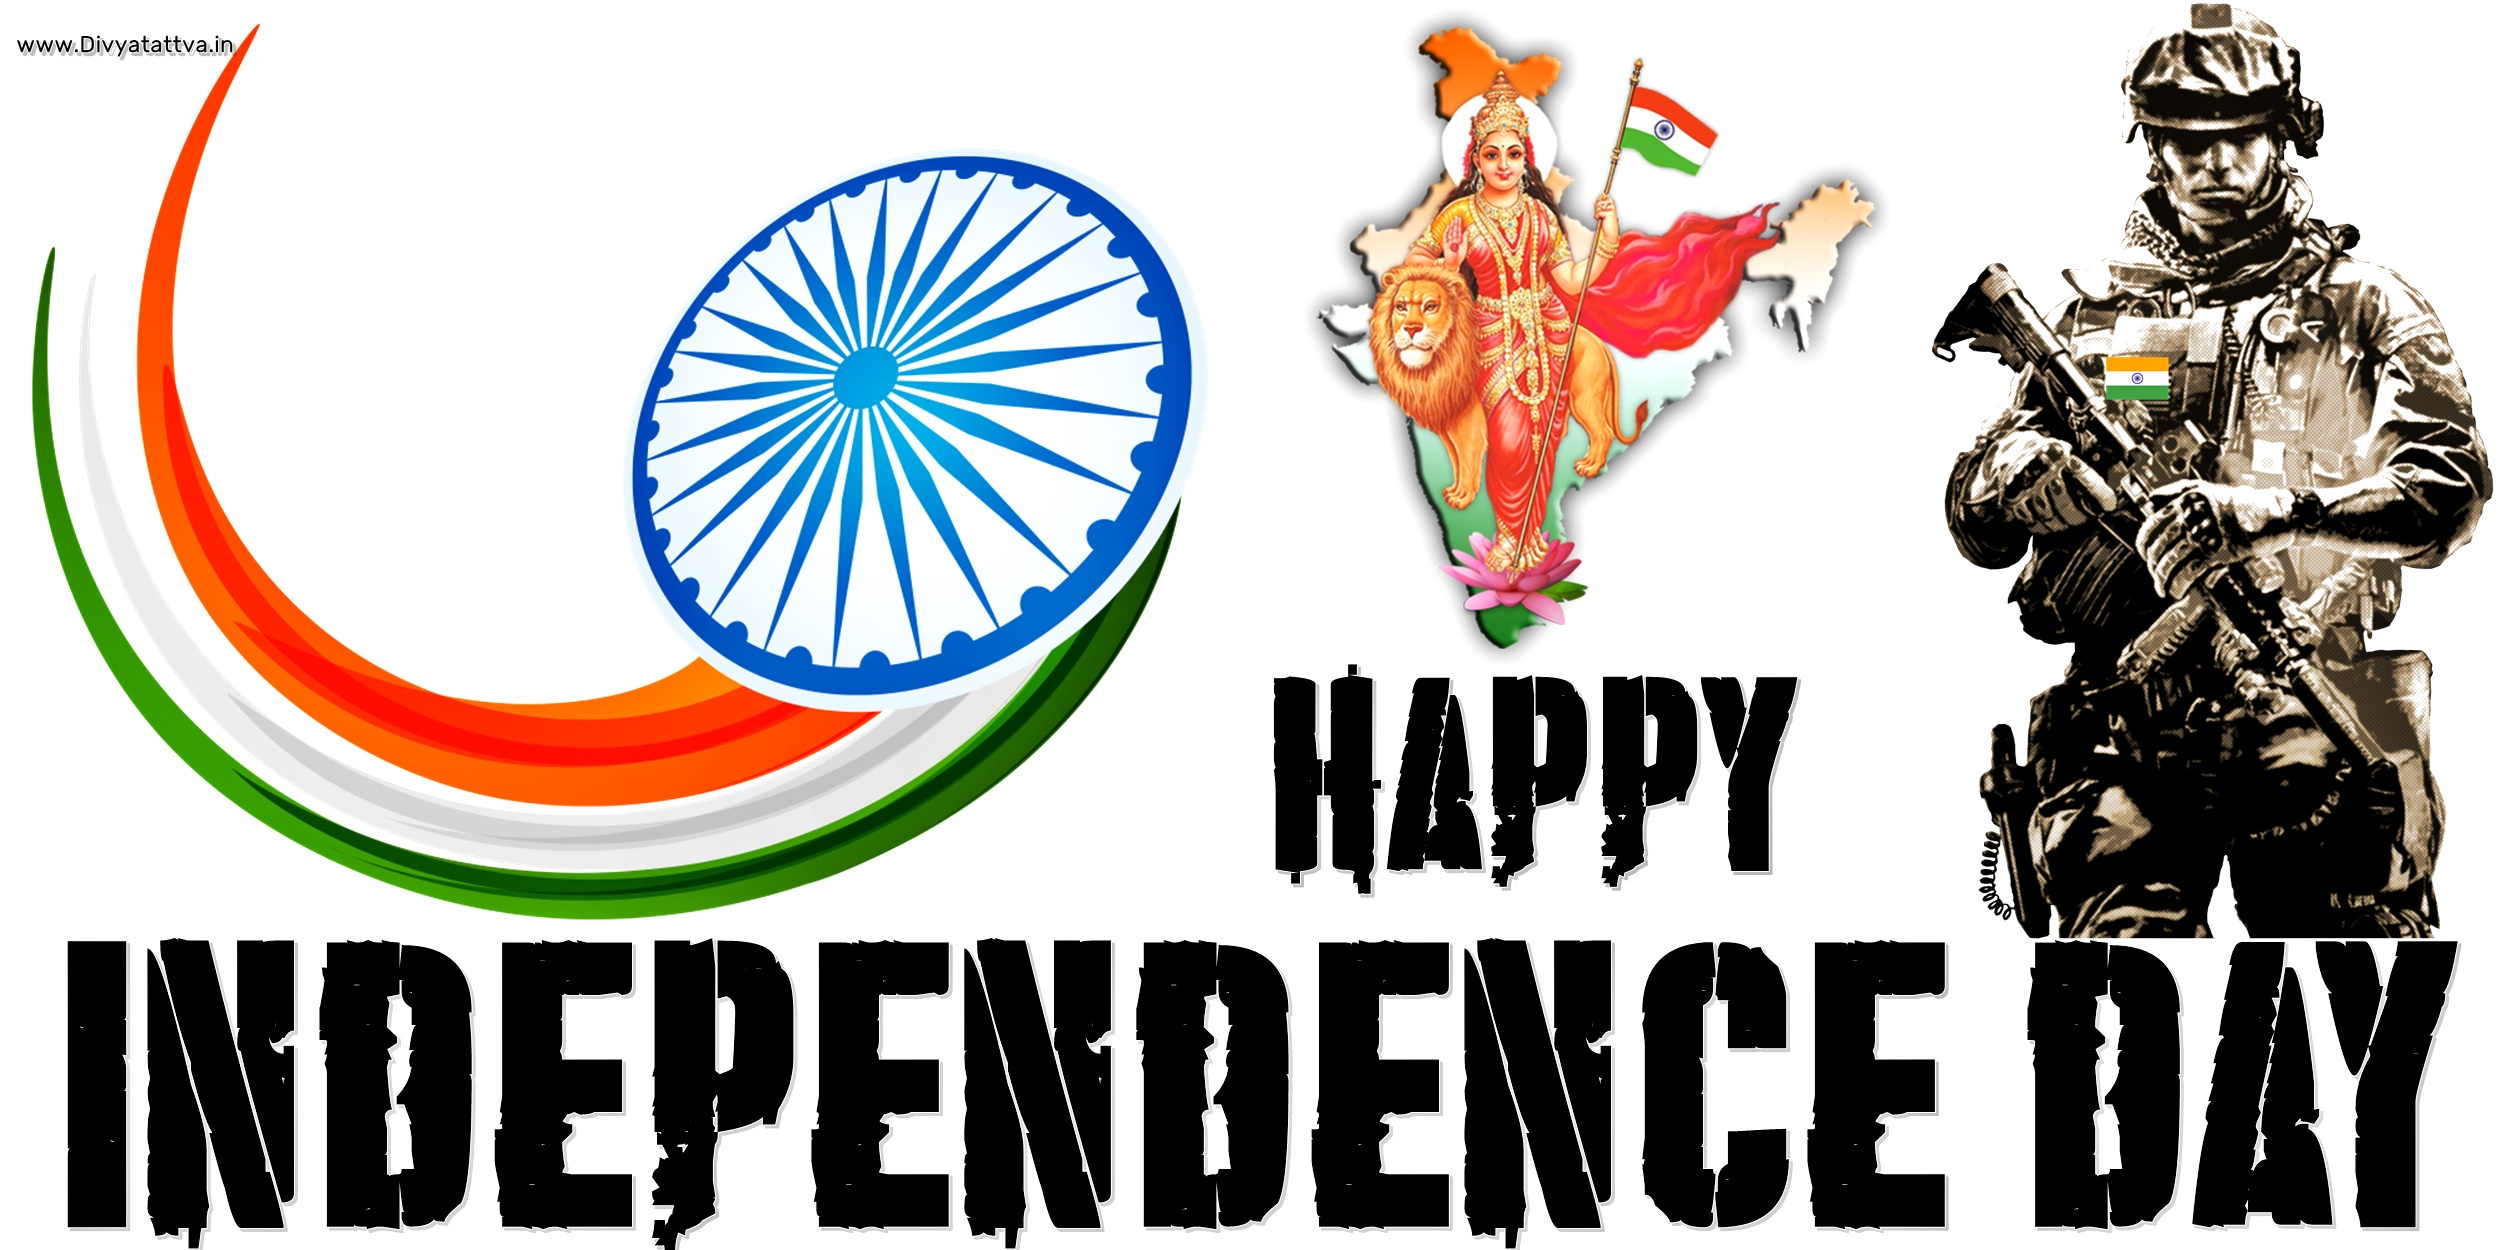 Happy Independence Day Pictures, 15th Aug India Greetings Messages, Background Images & Wallpapers